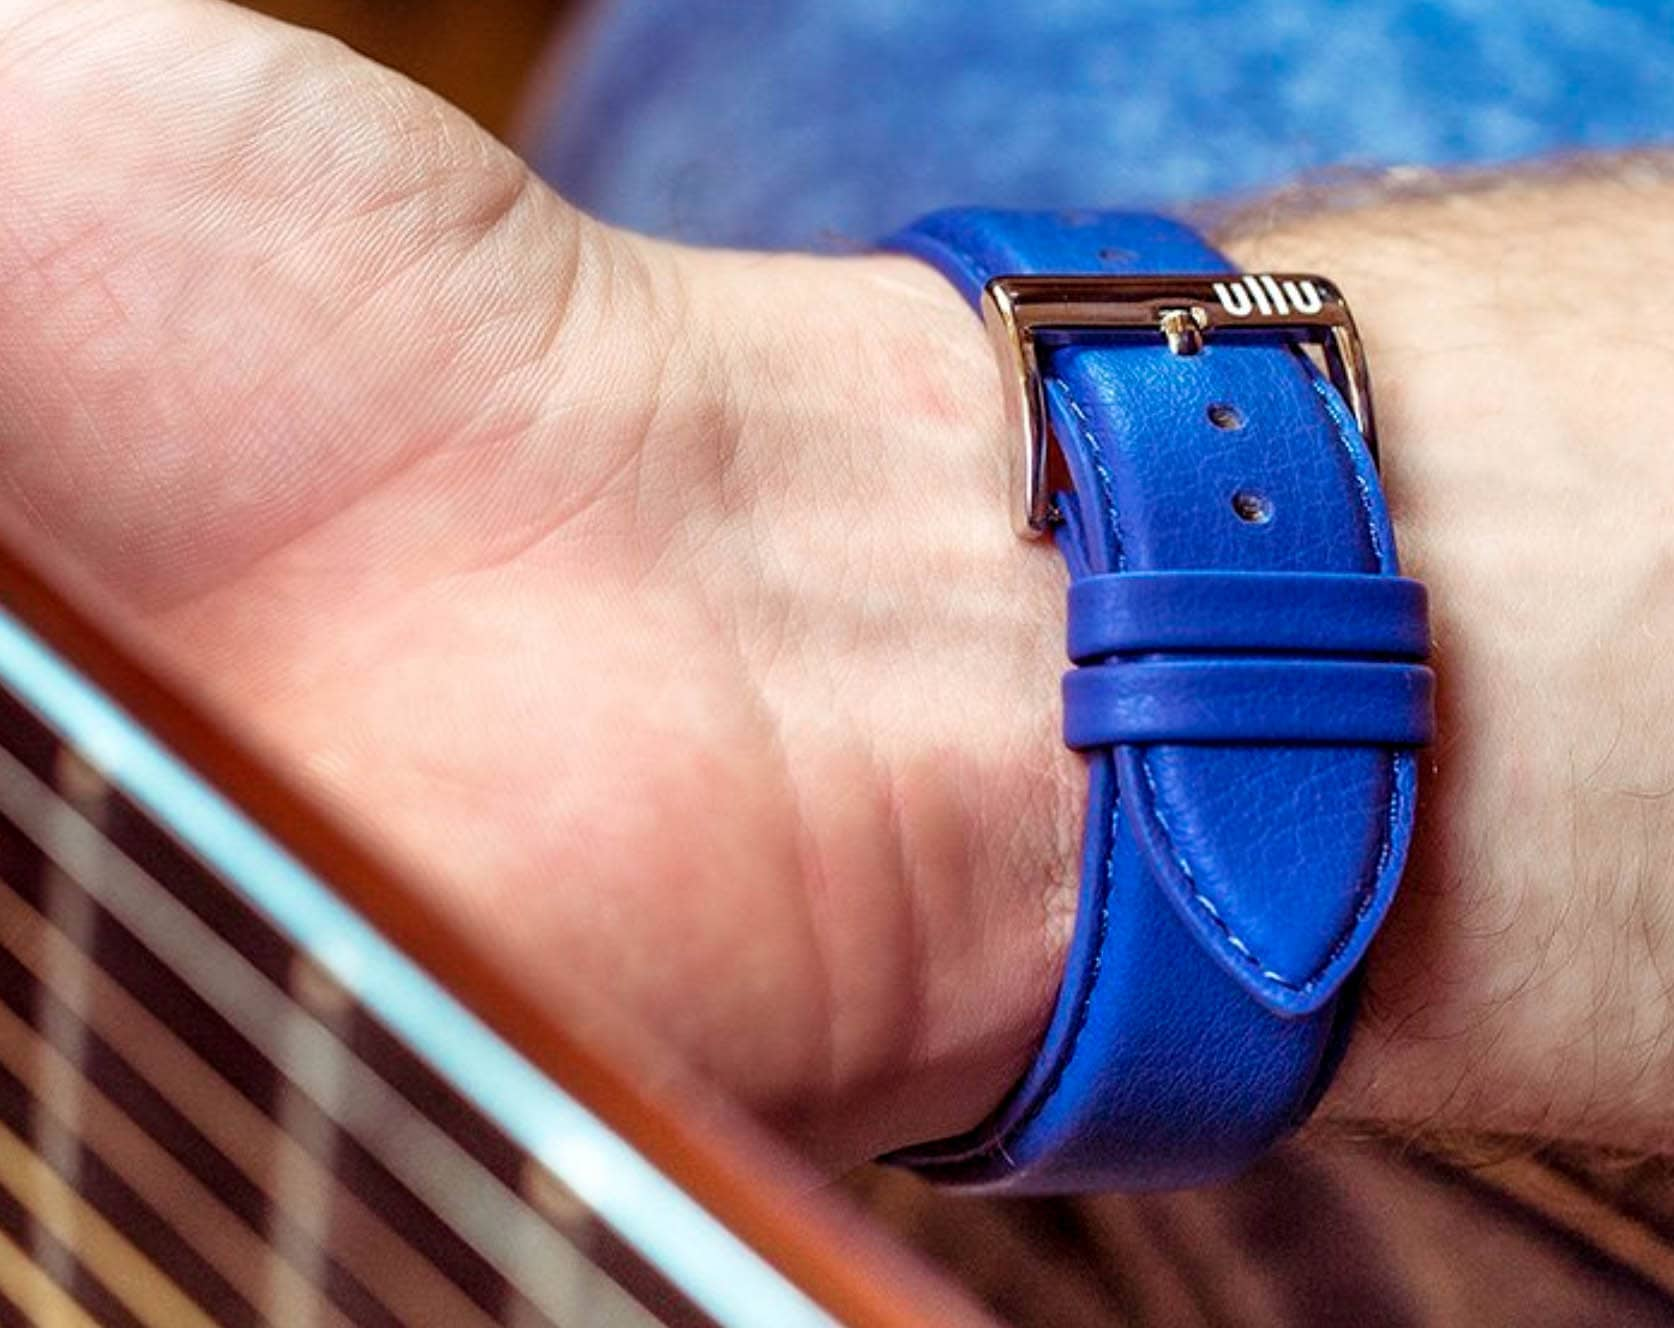 Switch it up with Blue Steel and 24 other vibrant color options from Ullu's line of premium leather Apple Watch bands